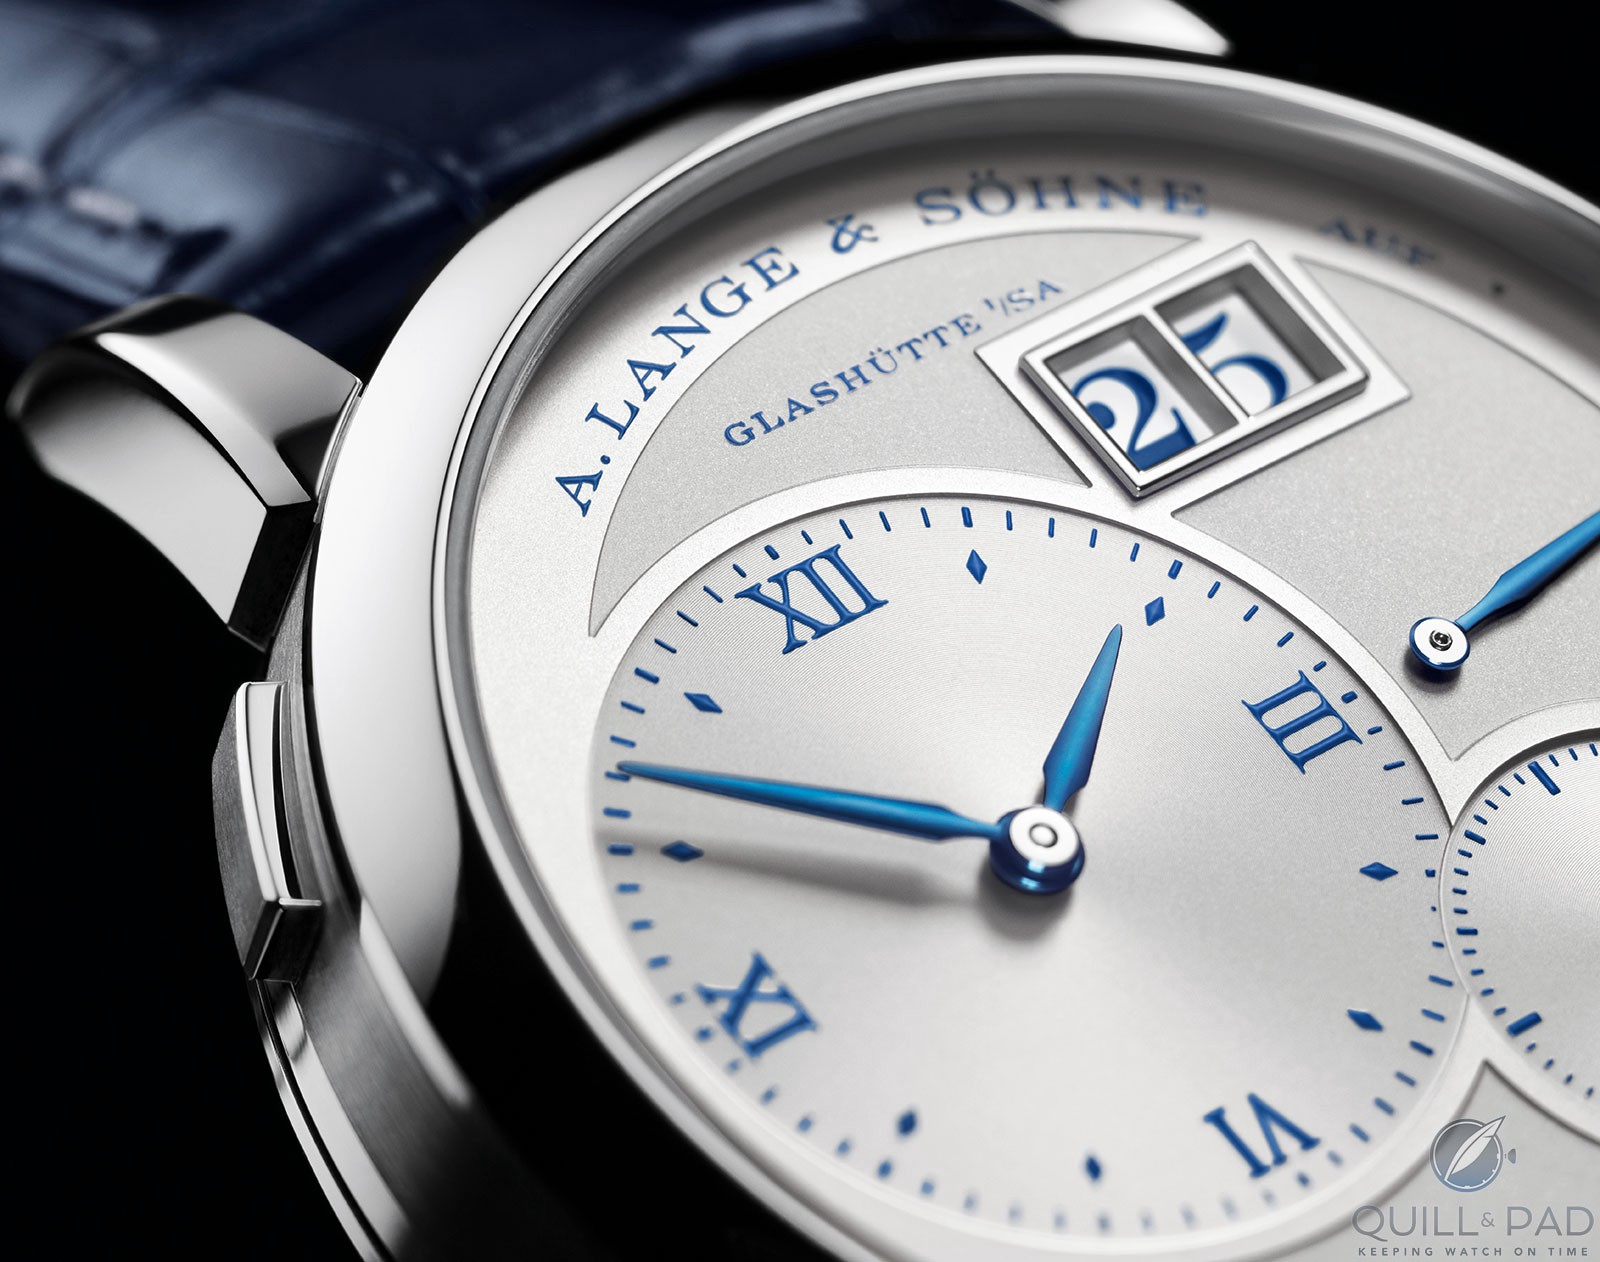 Close up look at the dial of the A. Lange & Söhne Lange 1 25th Anniversary Edition